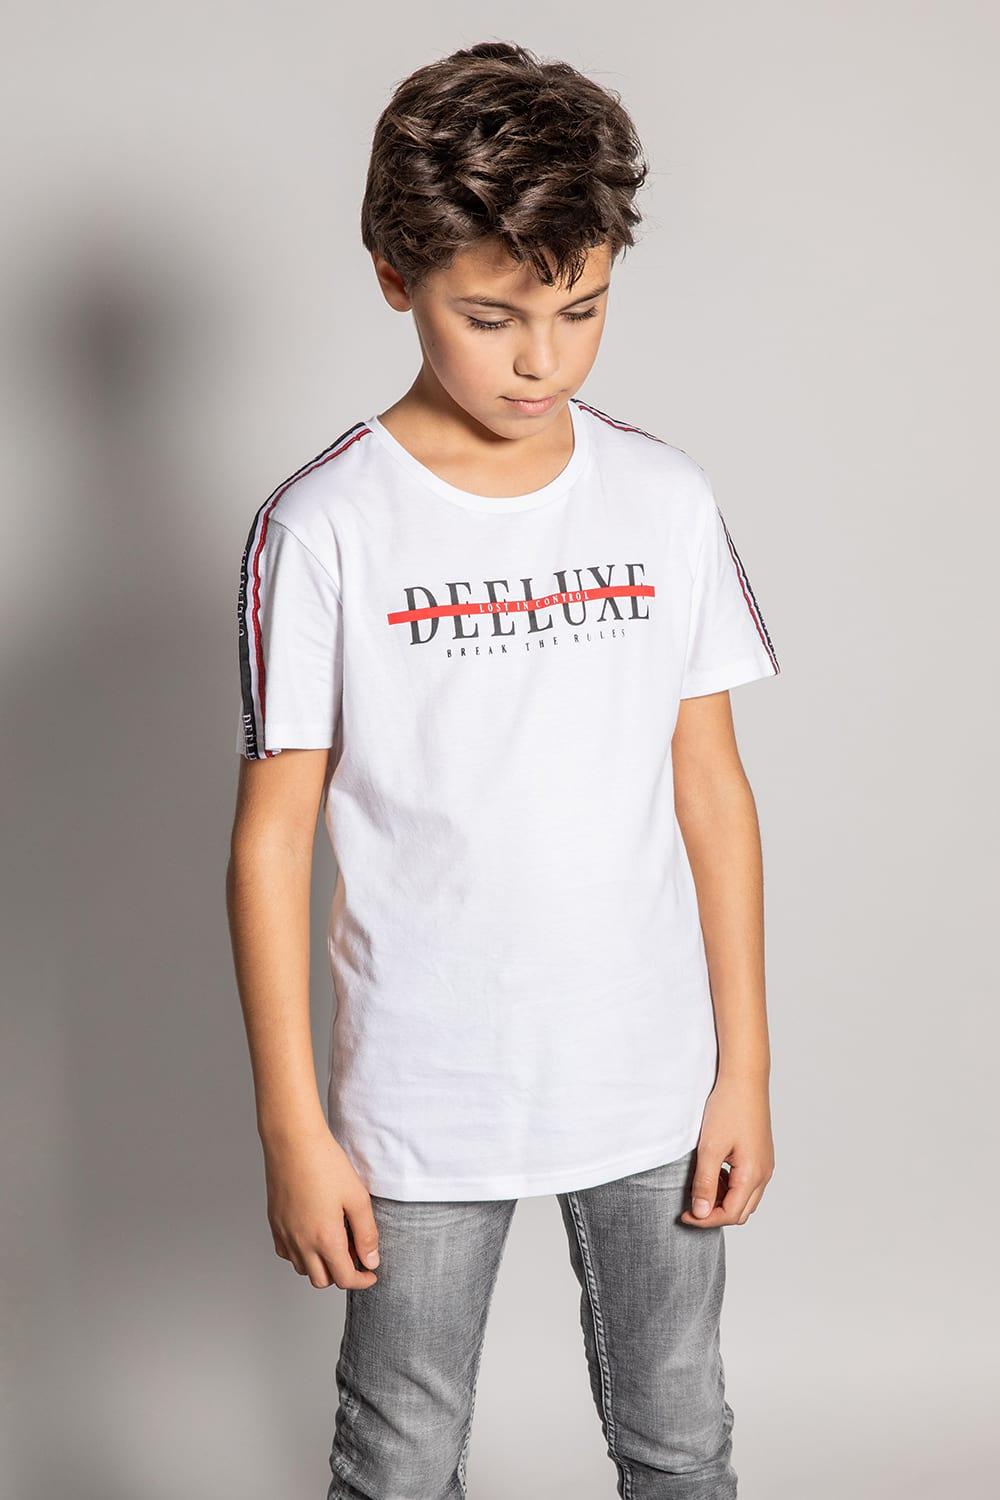 T-Shirt RALF - Couleur - White, Taille - 8